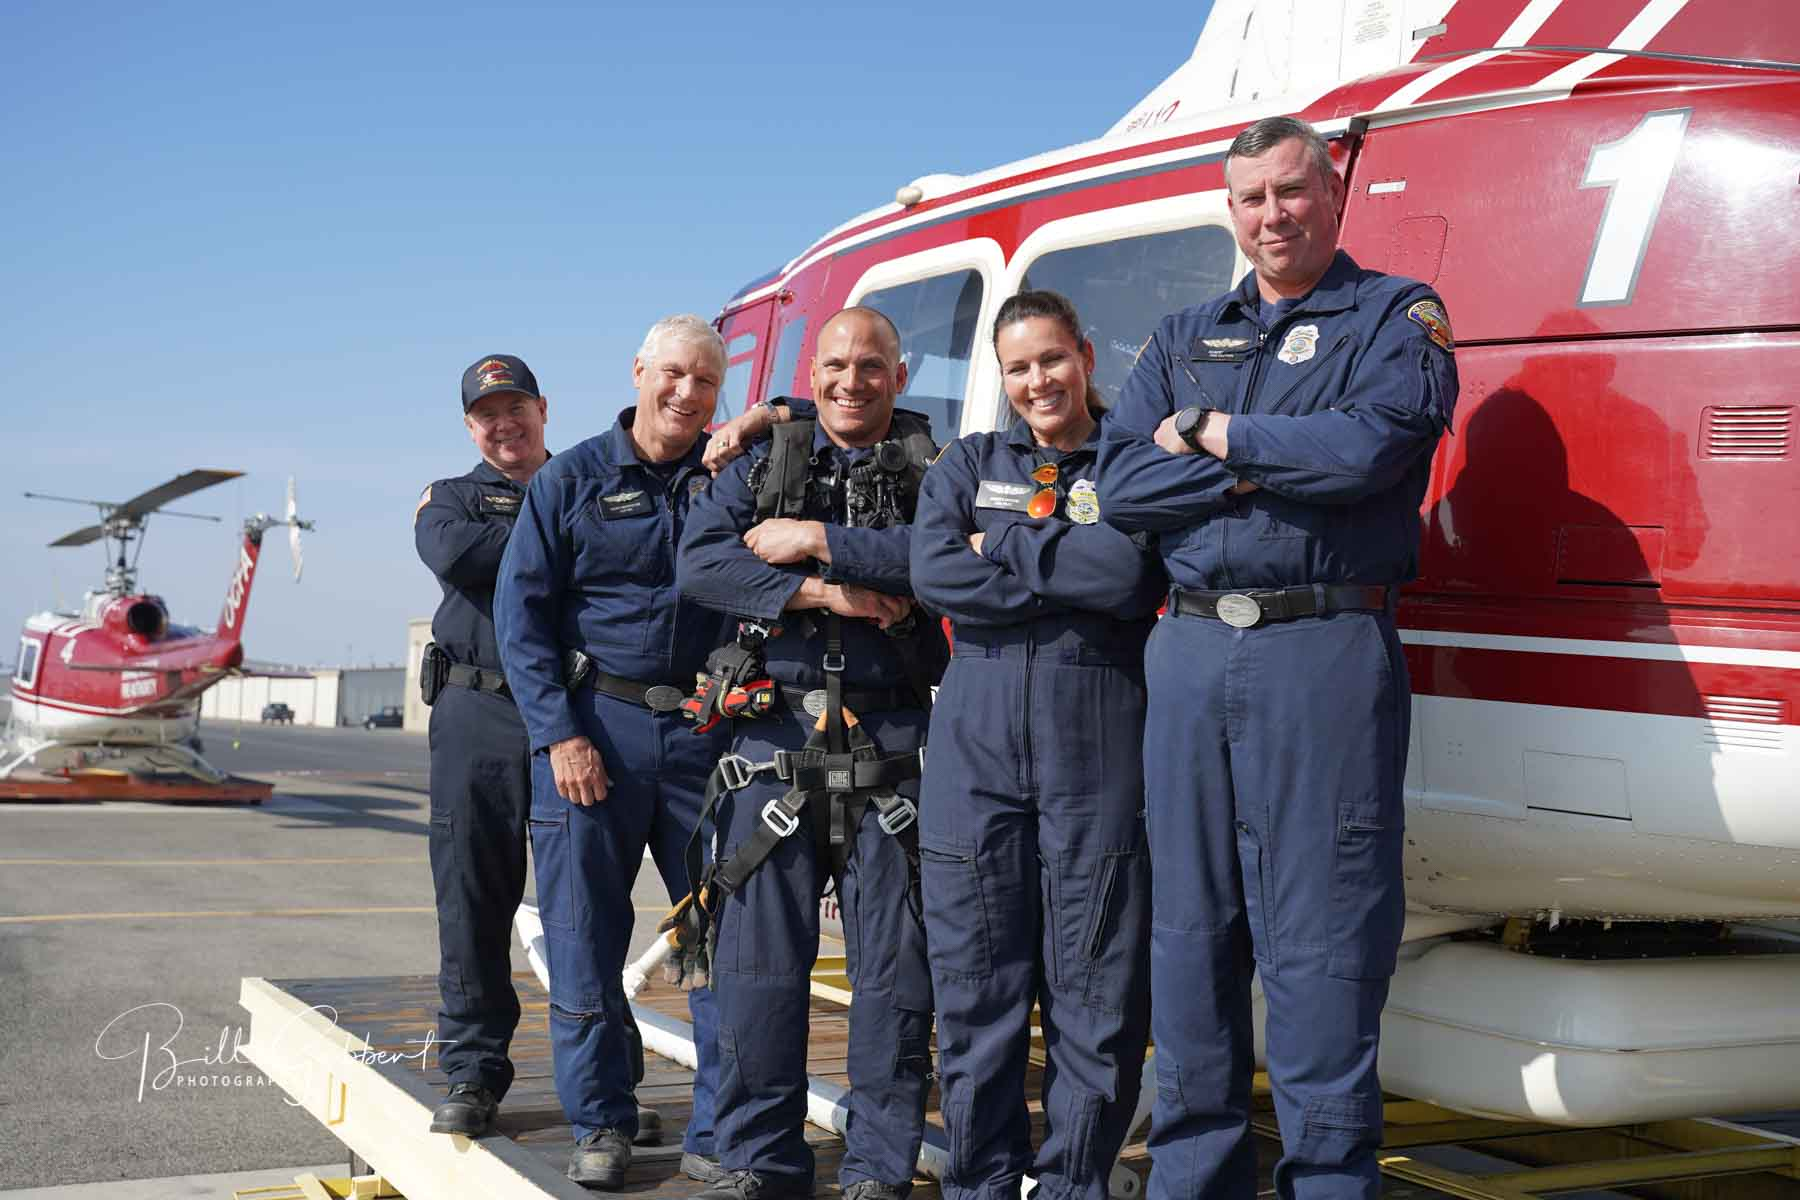 Orange County Fire Authority flight crews